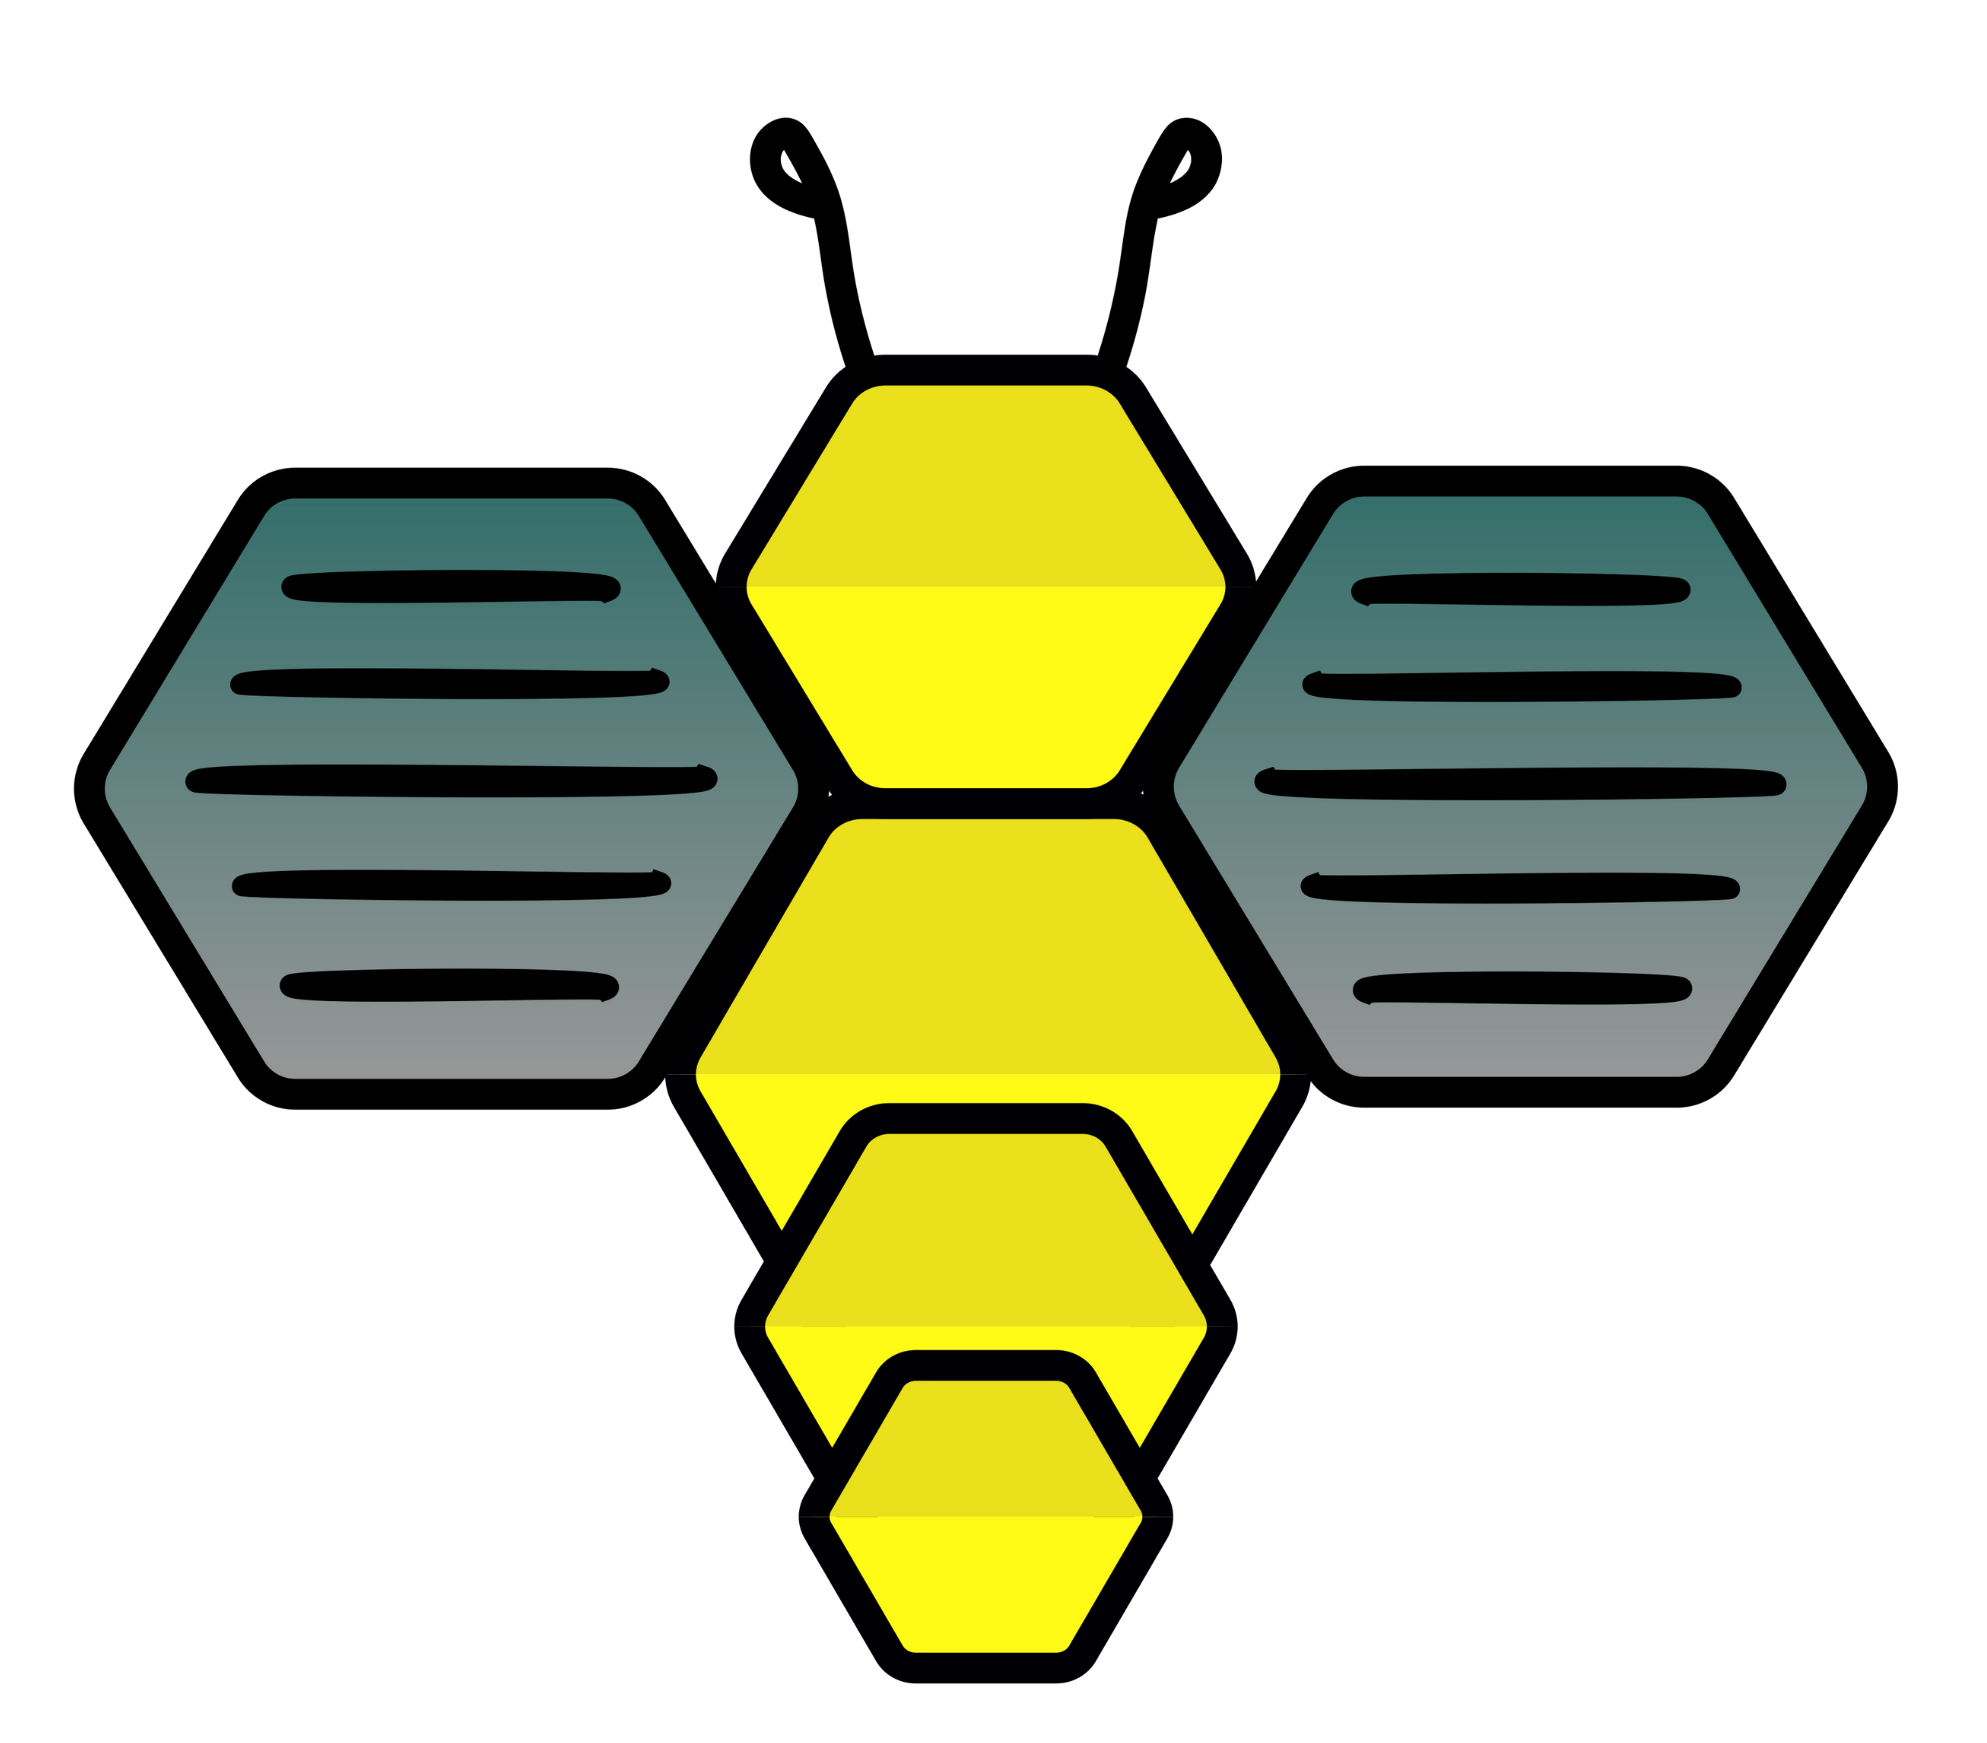 AssignmentBee